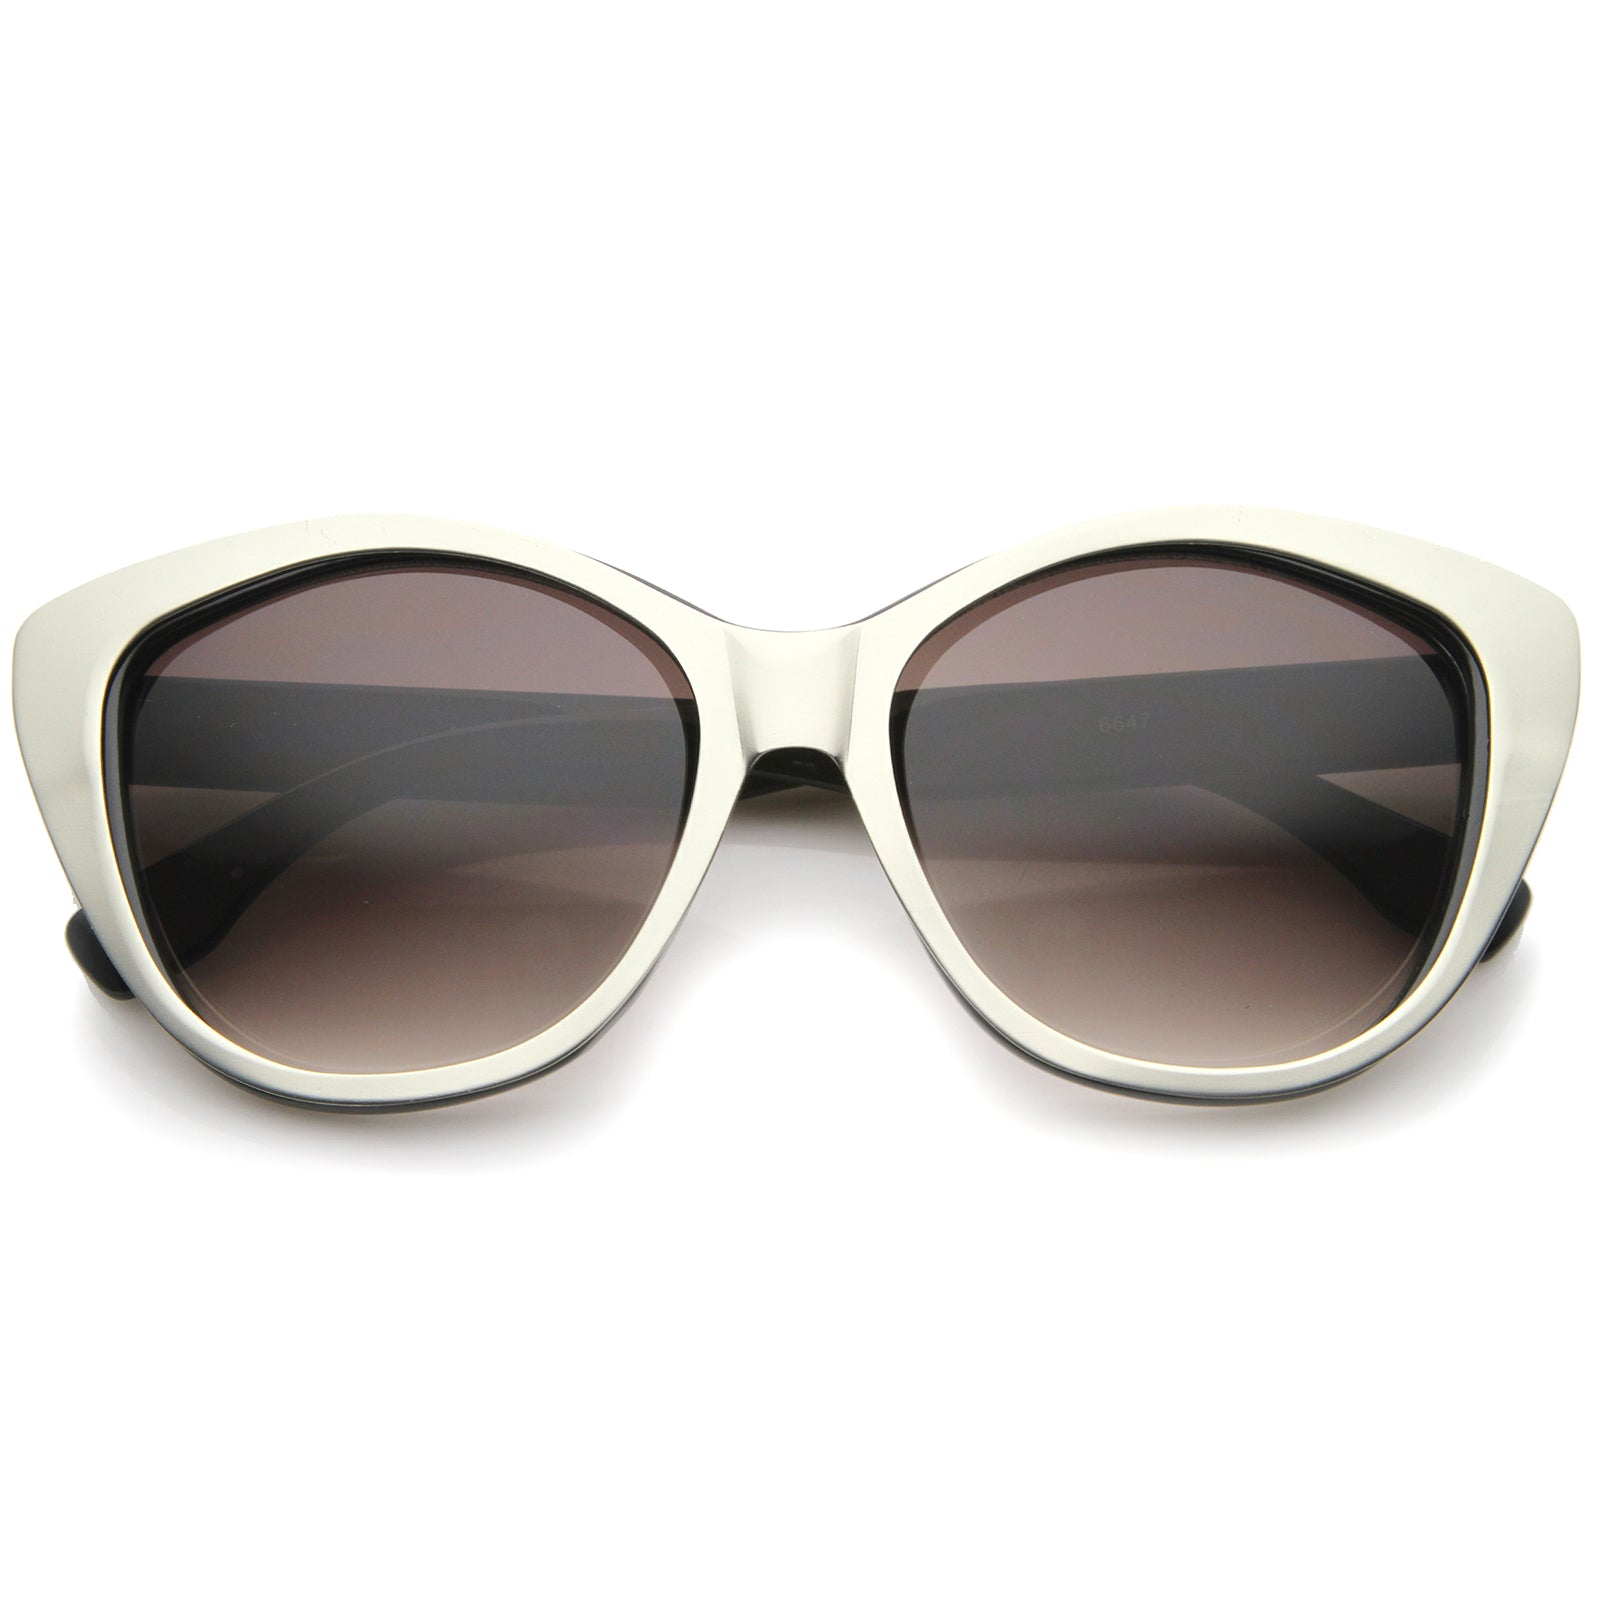 Women's High Fashion Two-Toned Tinted Lens Oversize Cat Eye Sunglasses 55mm - sunglass.la - 5